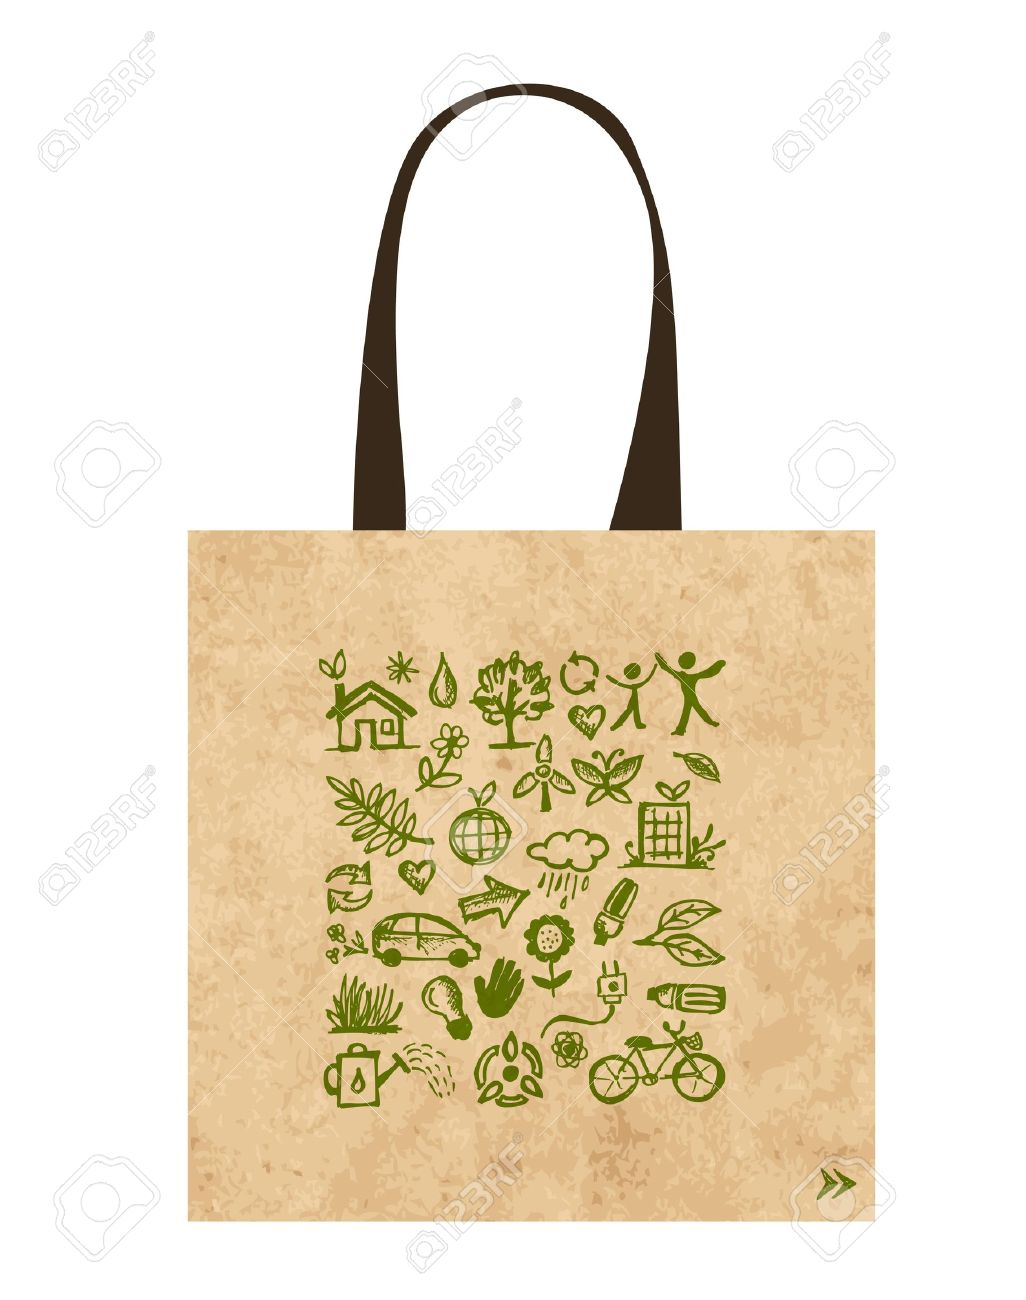 Paper bag vector - Paper Bags With Green Ecological Icons Design Stock Vector 16125644